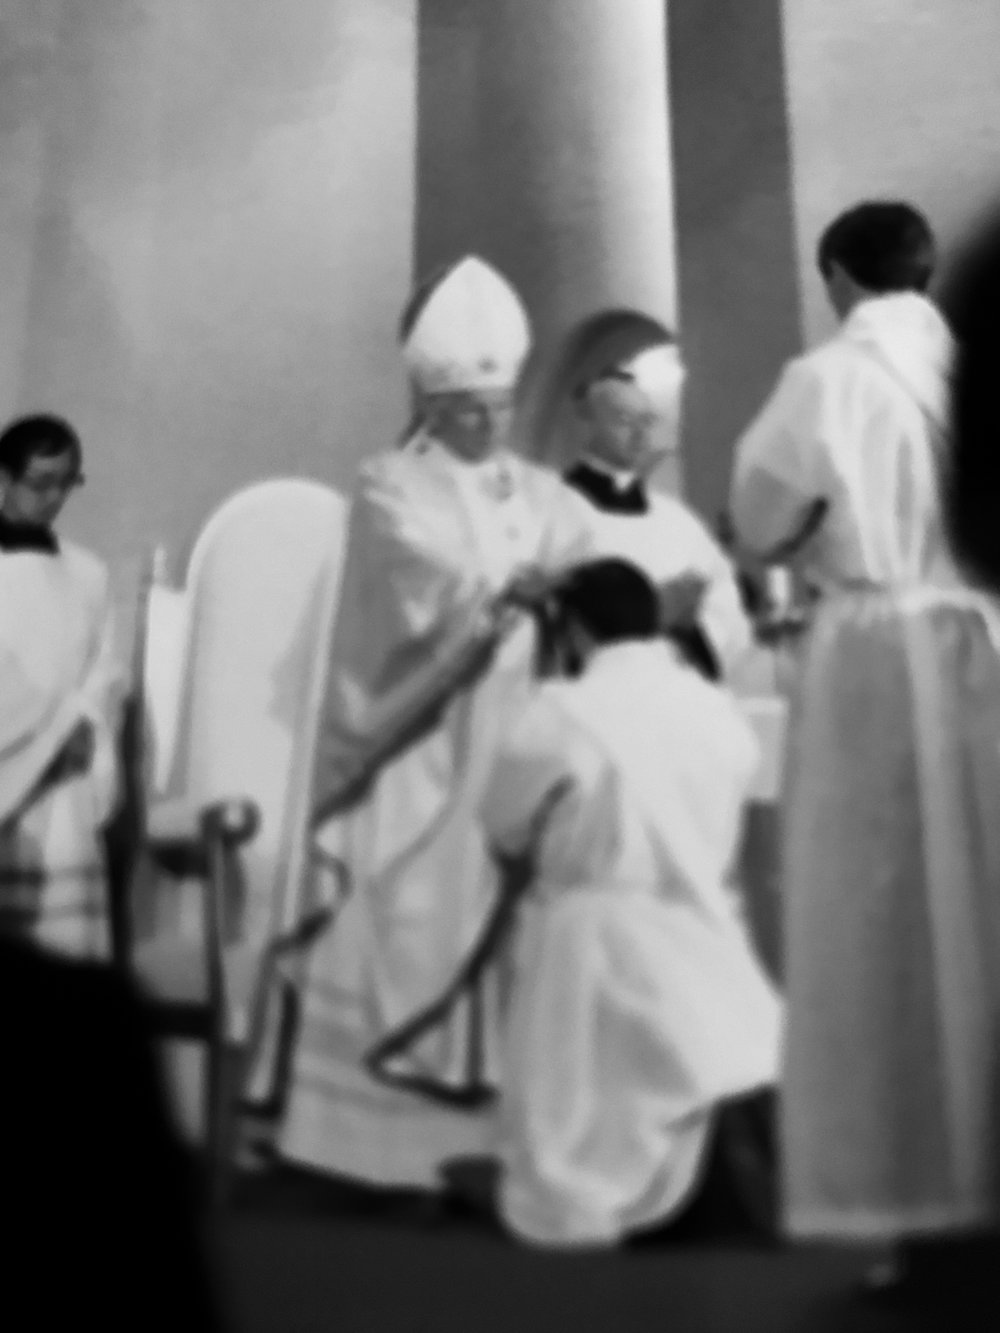 1981 Minoru Joseph Akakura was ordained to the priesthood by Saint John Paul II in Nagasaki.